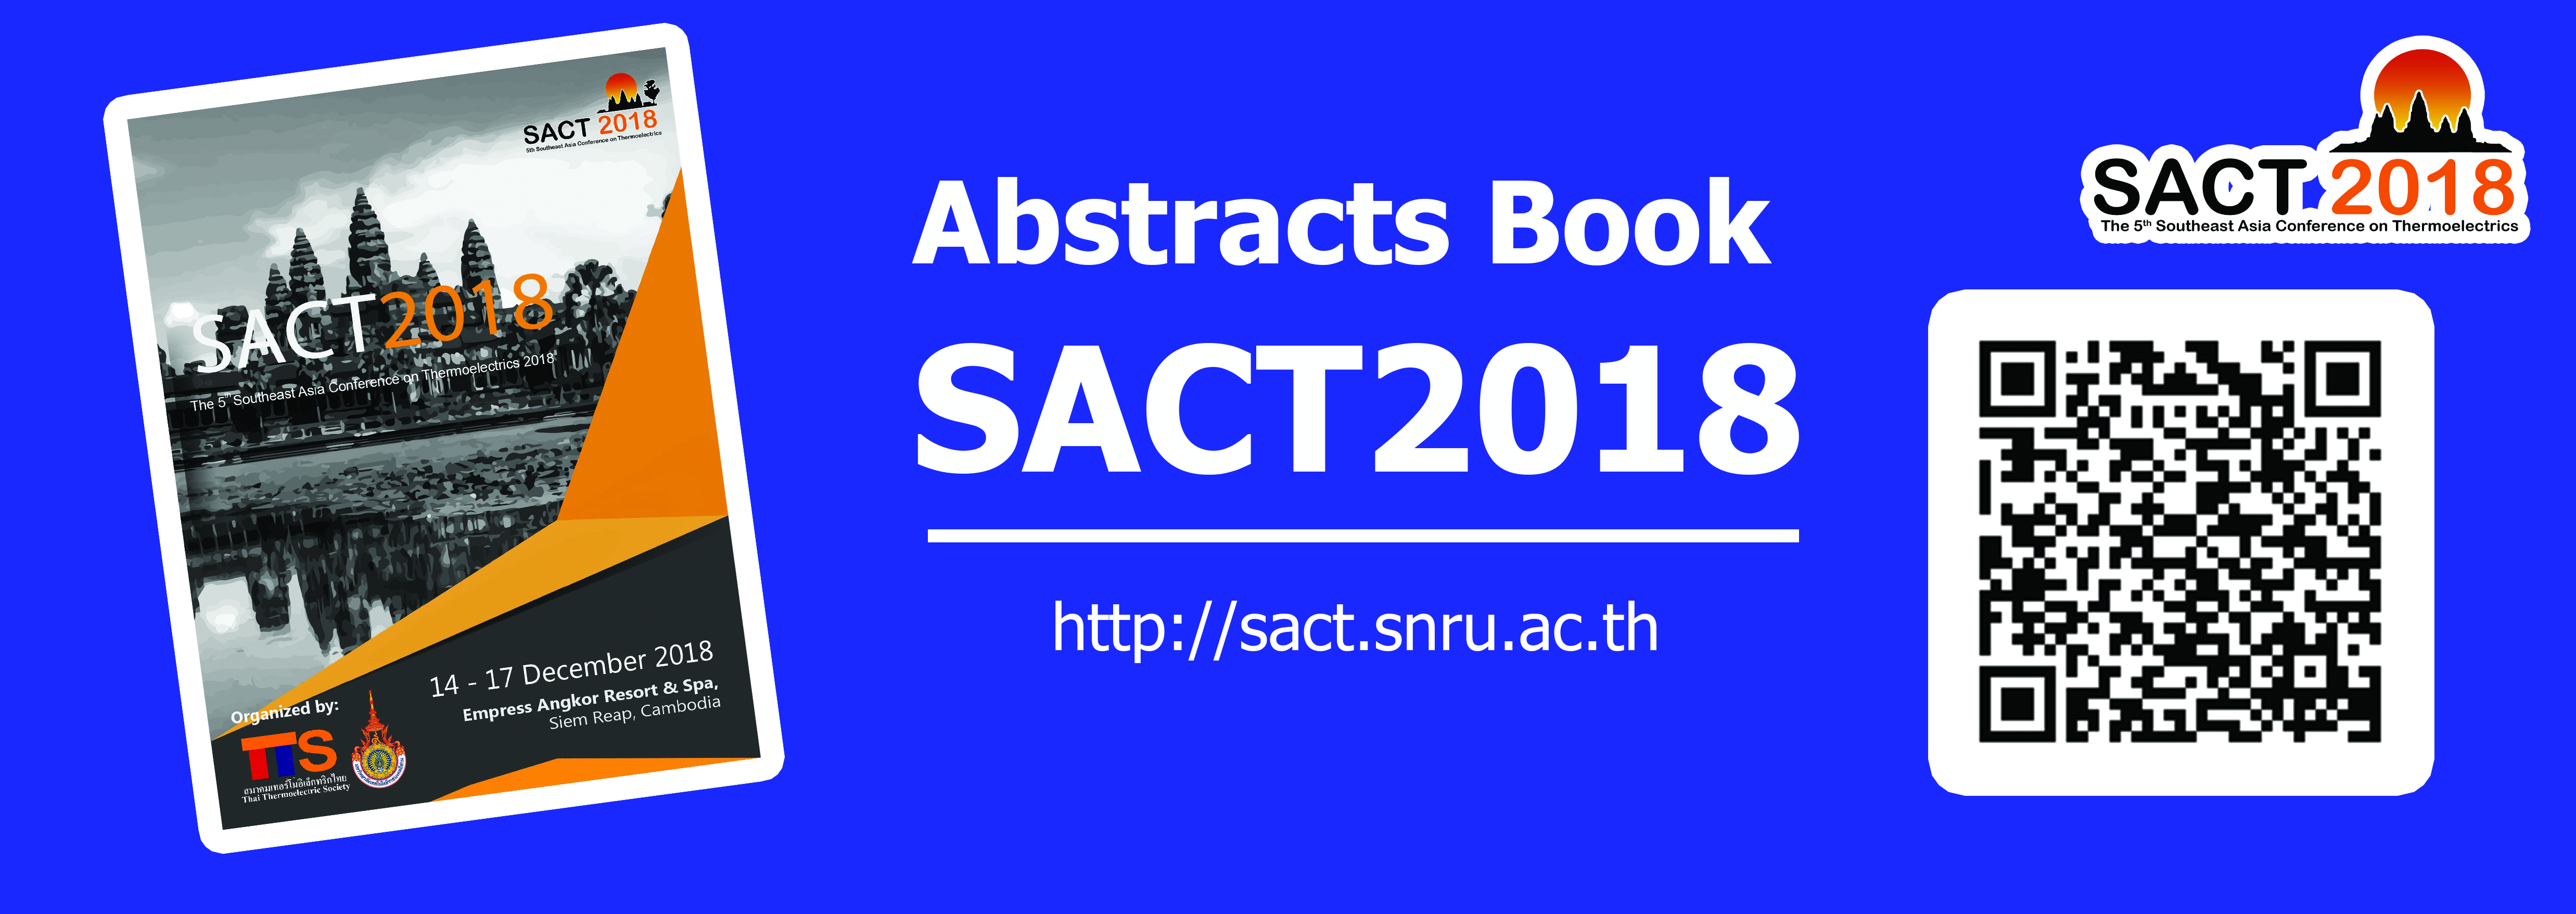 Abstract Book SACT2018